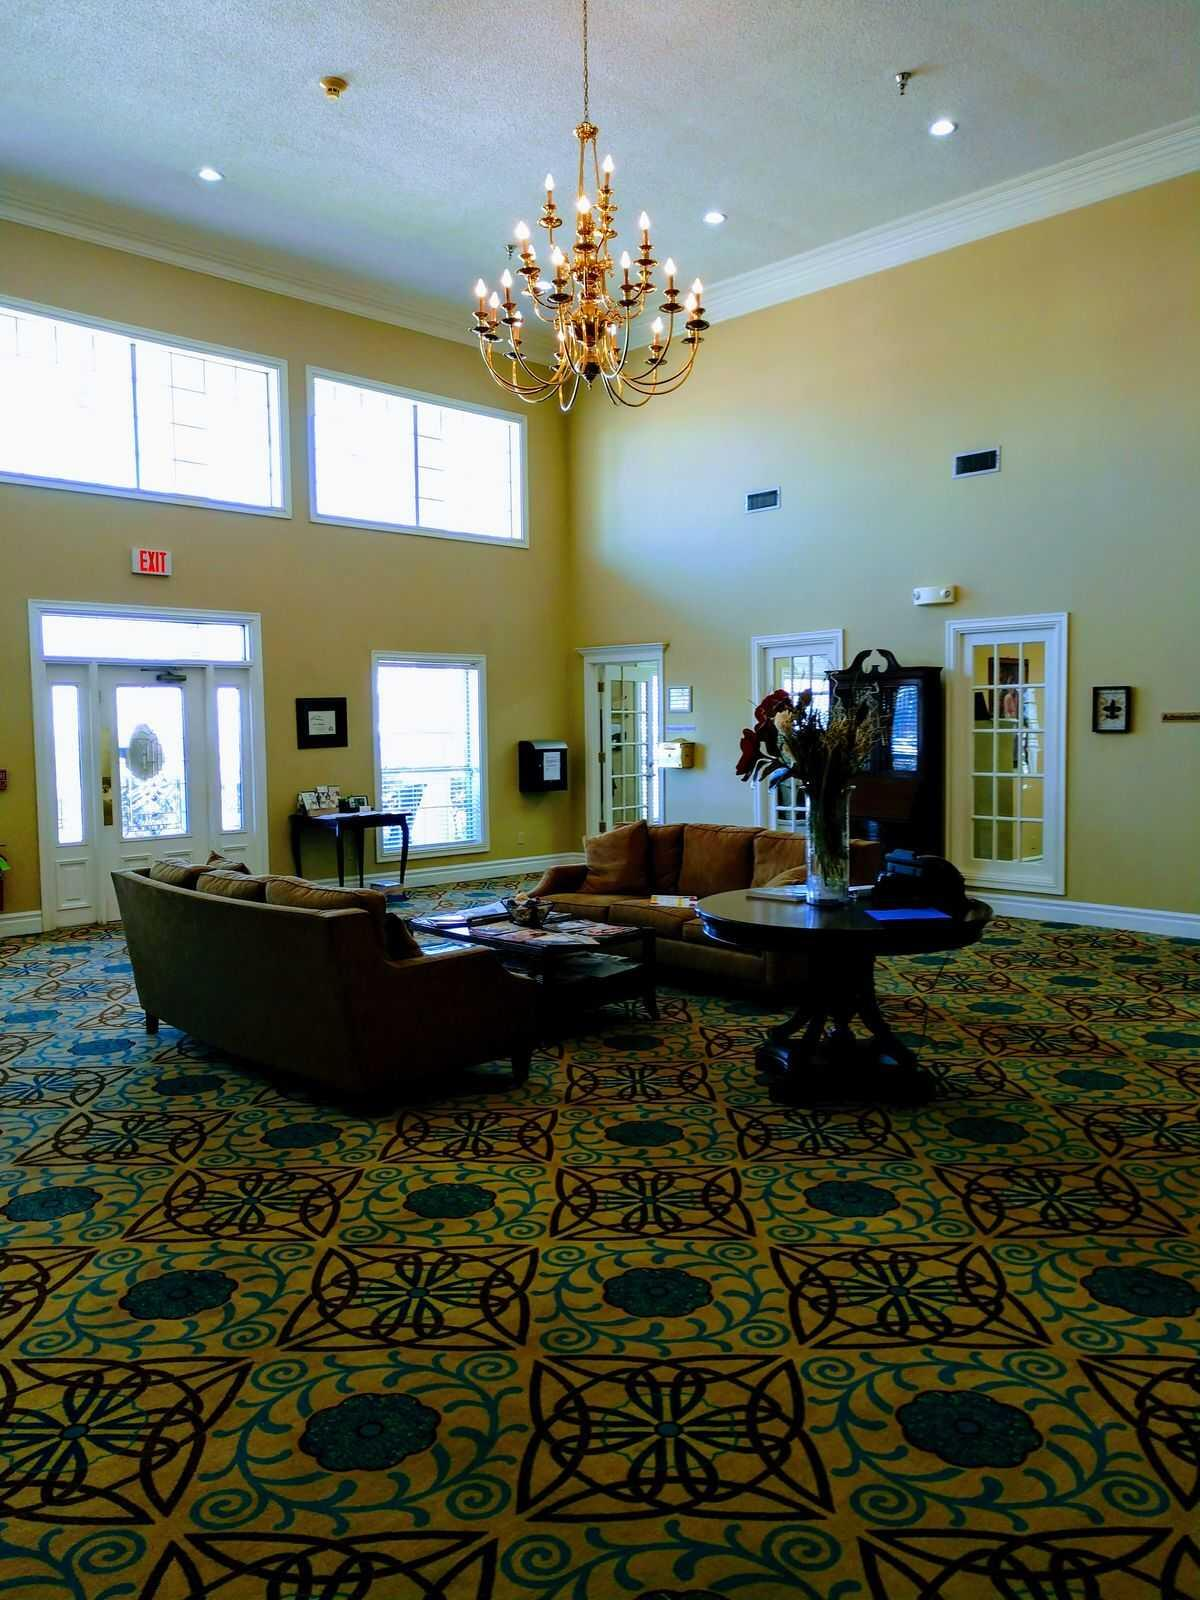 Photo of Savannah Grand of Bossier City, Assisted Living, Bossier City, LA 6